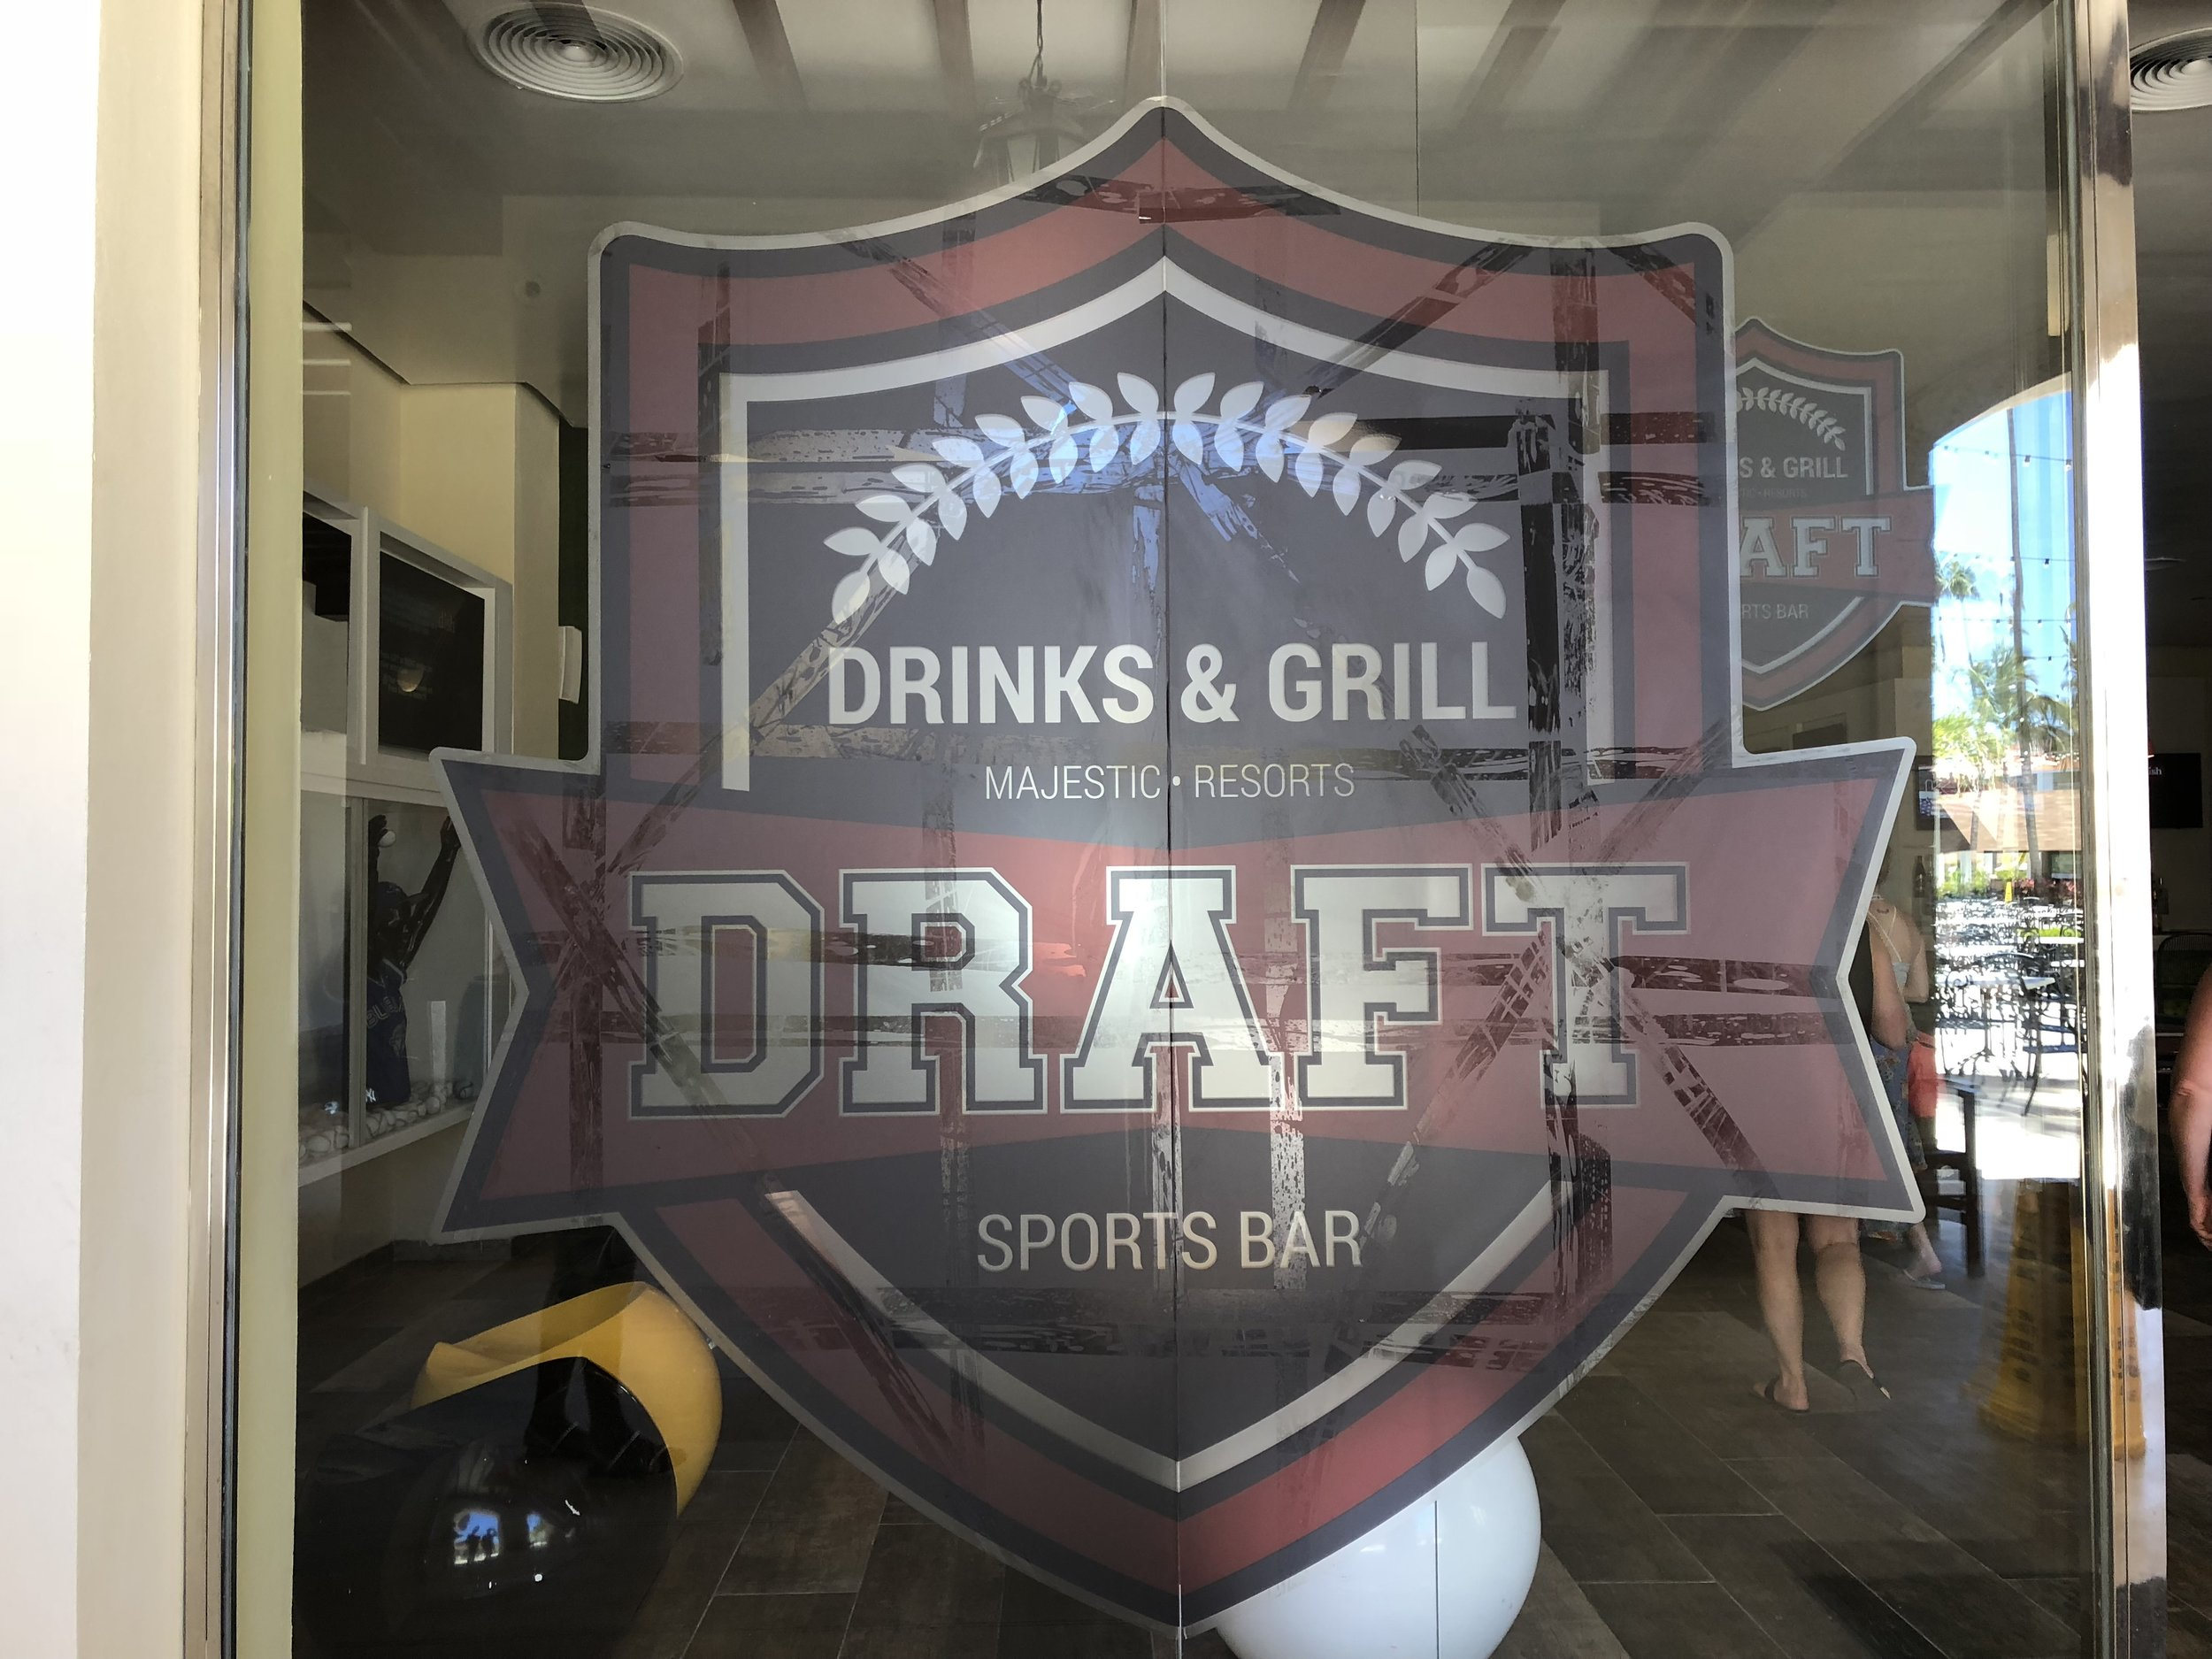 On site sports bar.